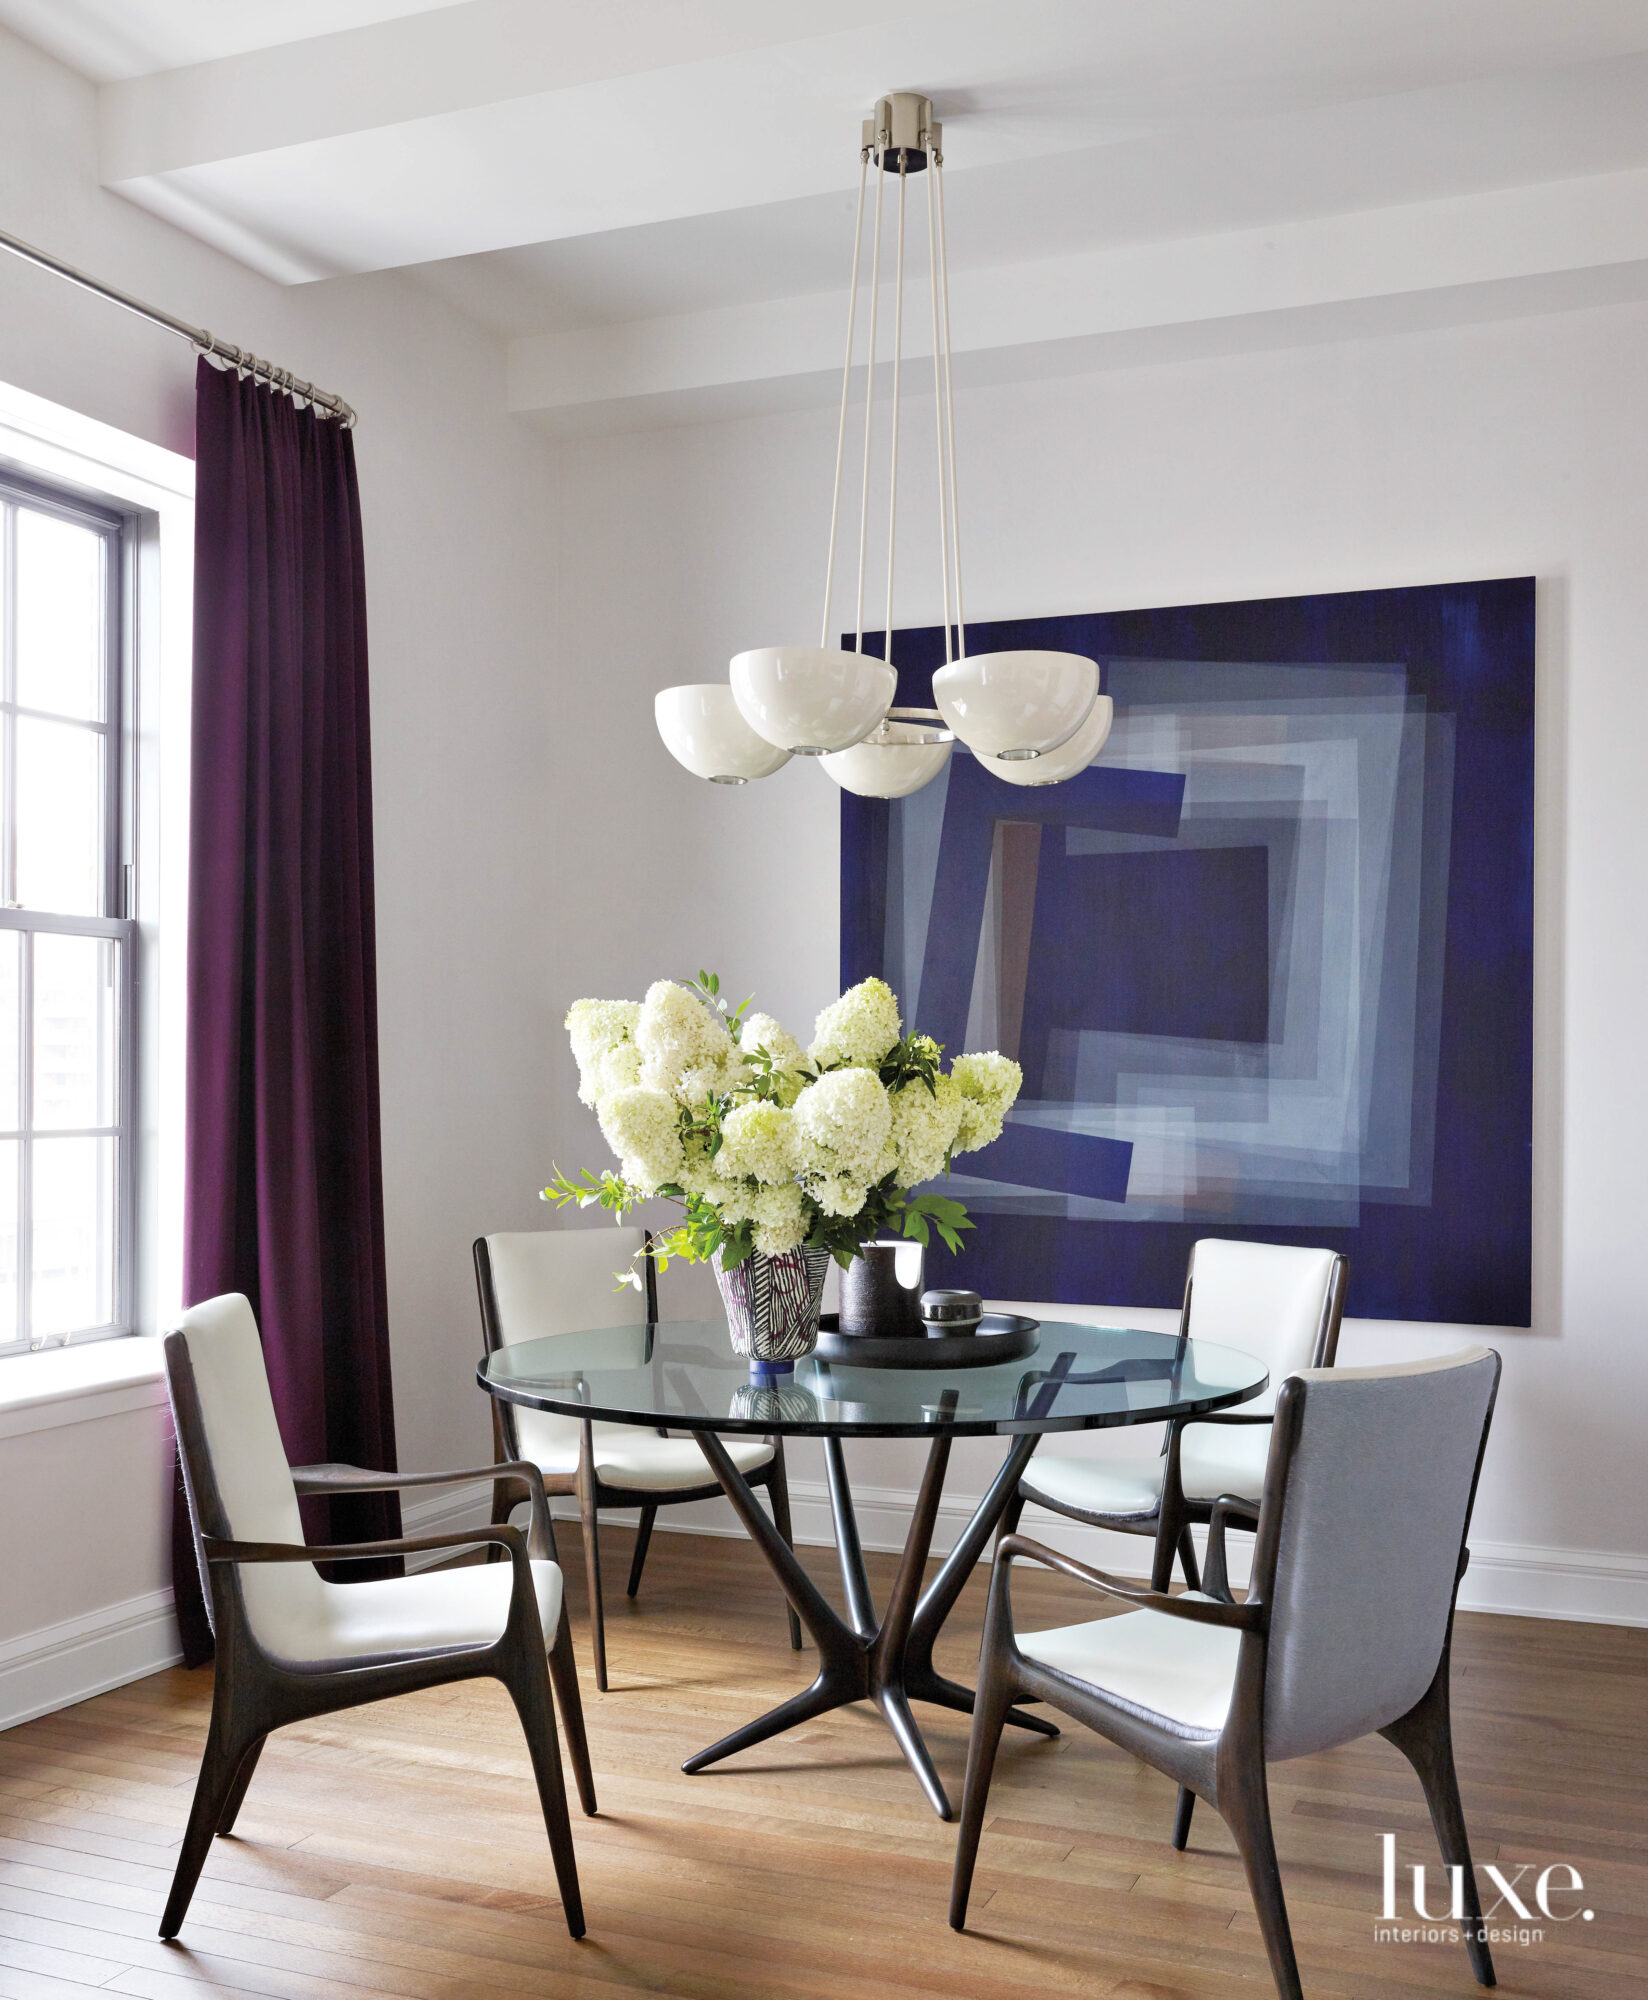 Dark blue decor surrounds a clear, round dining room table